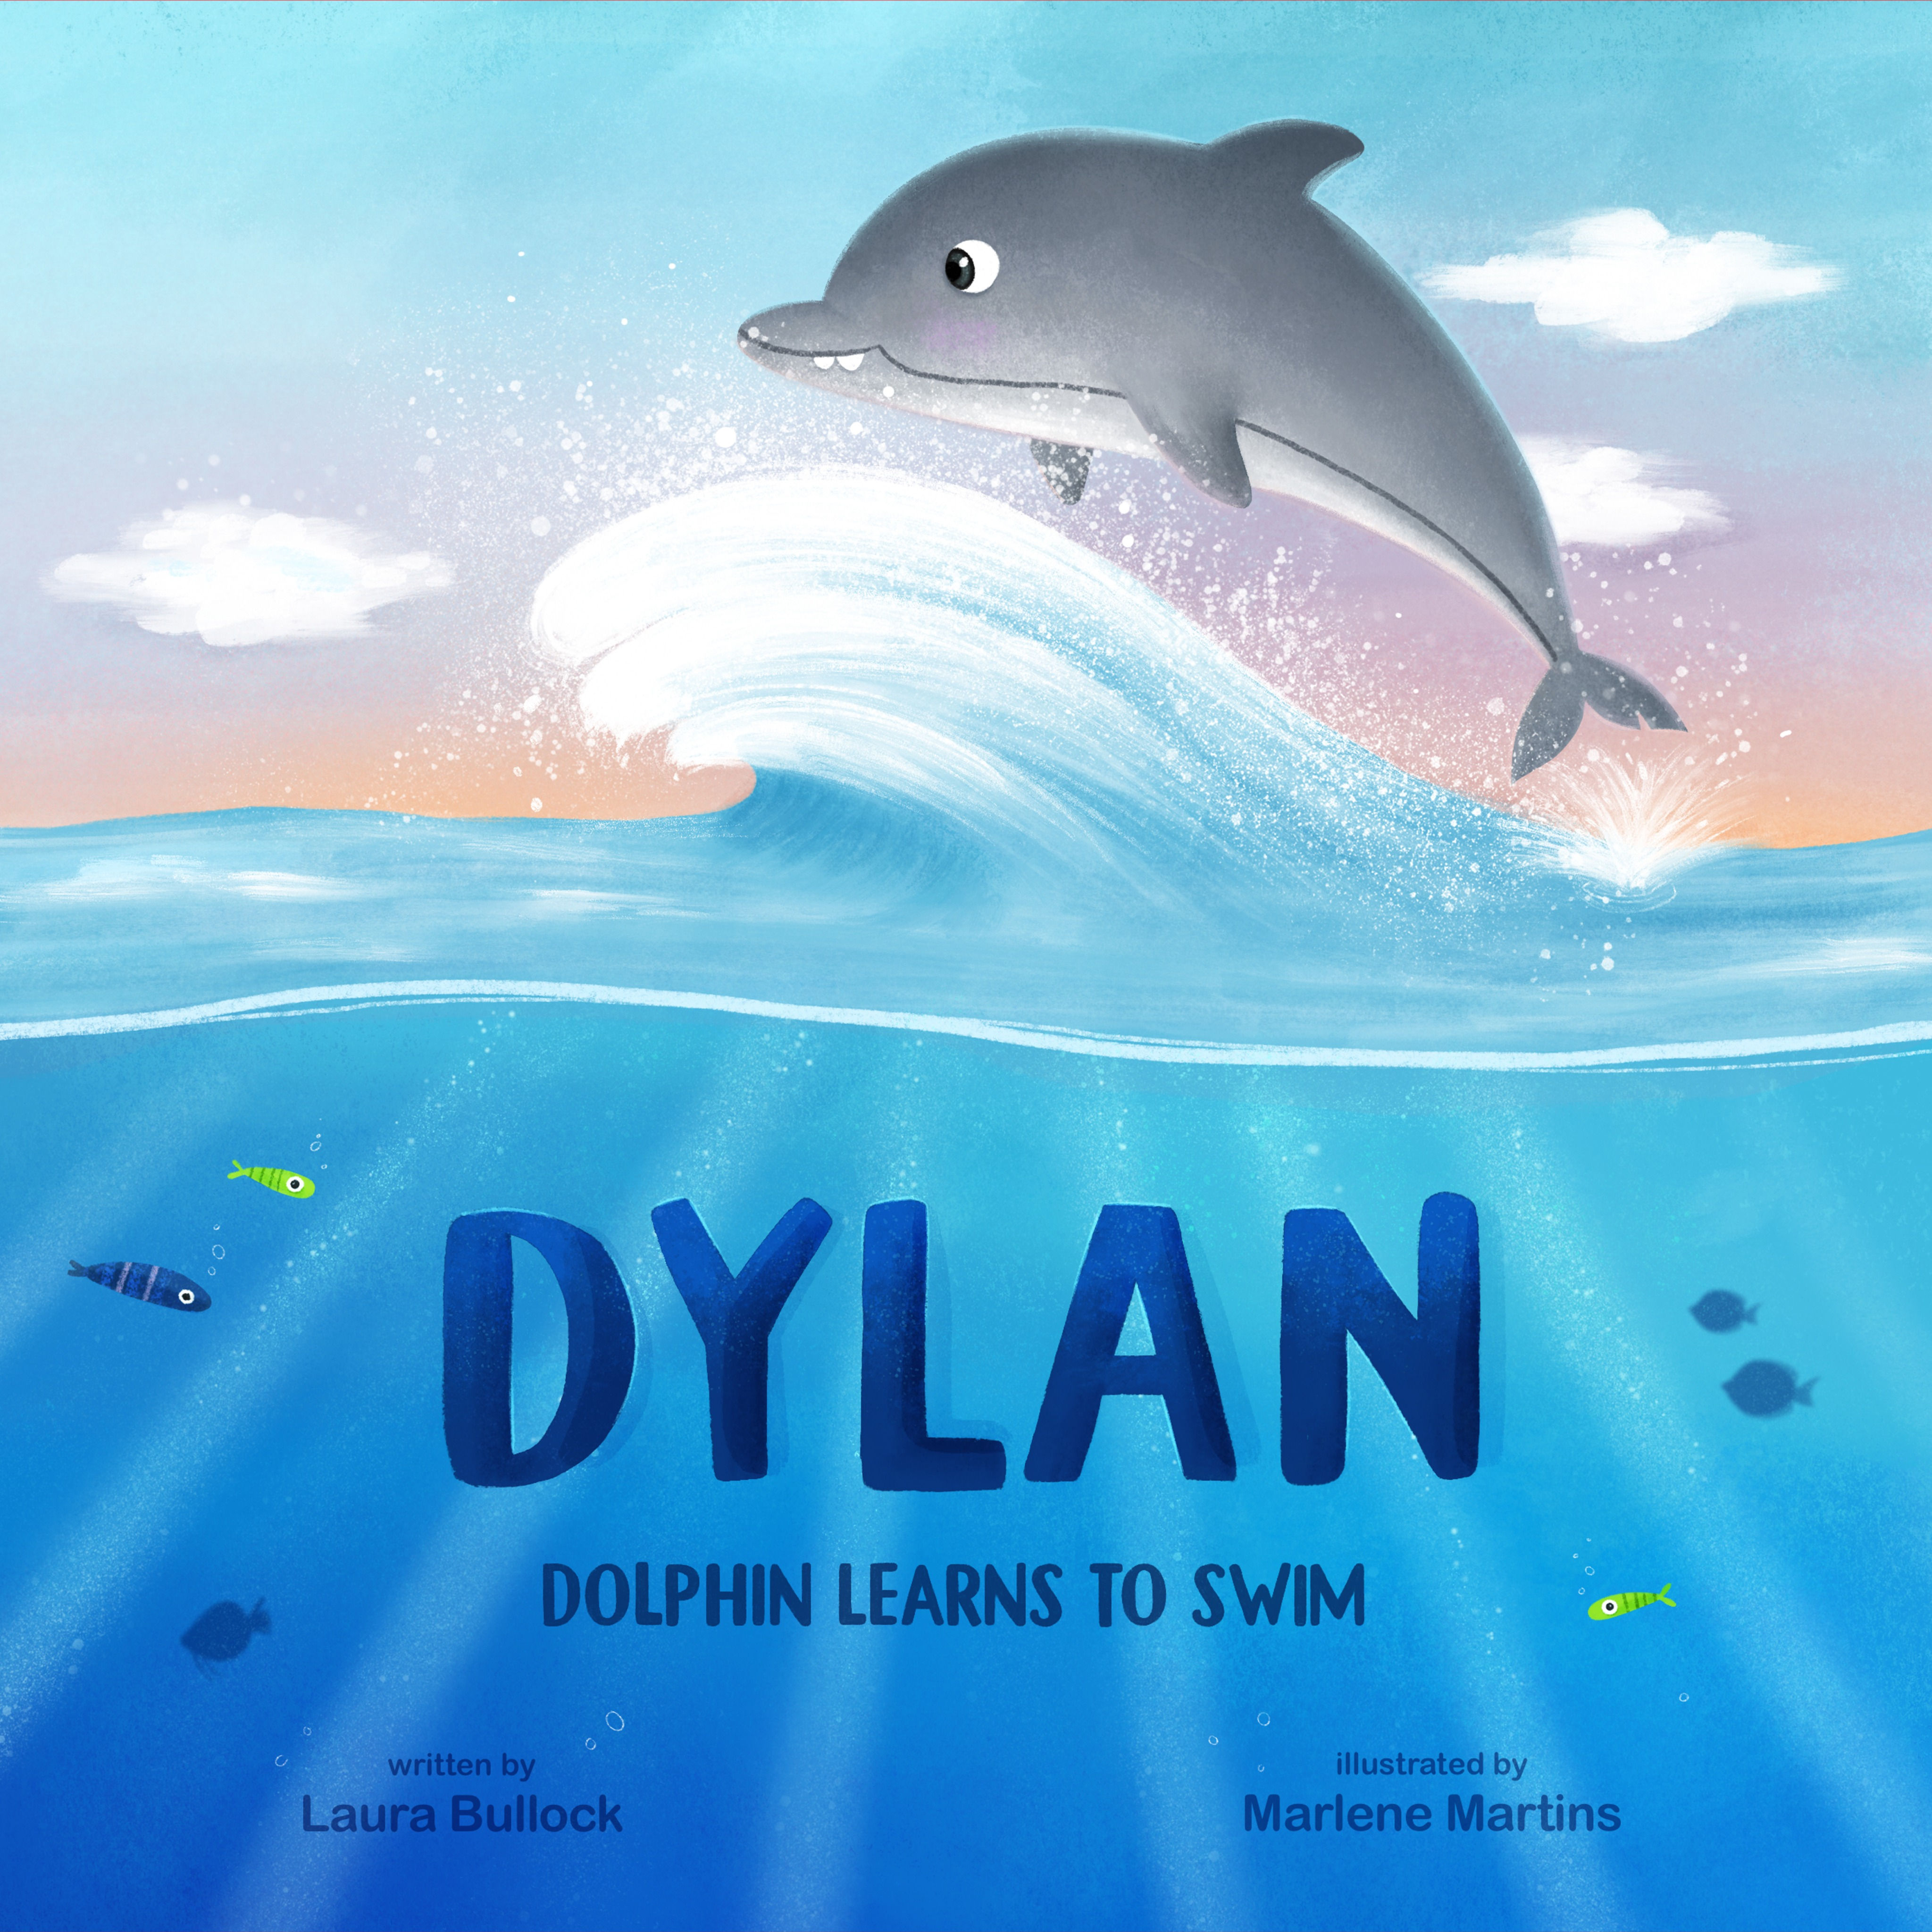 Dylan Dolphin Learns To Swim